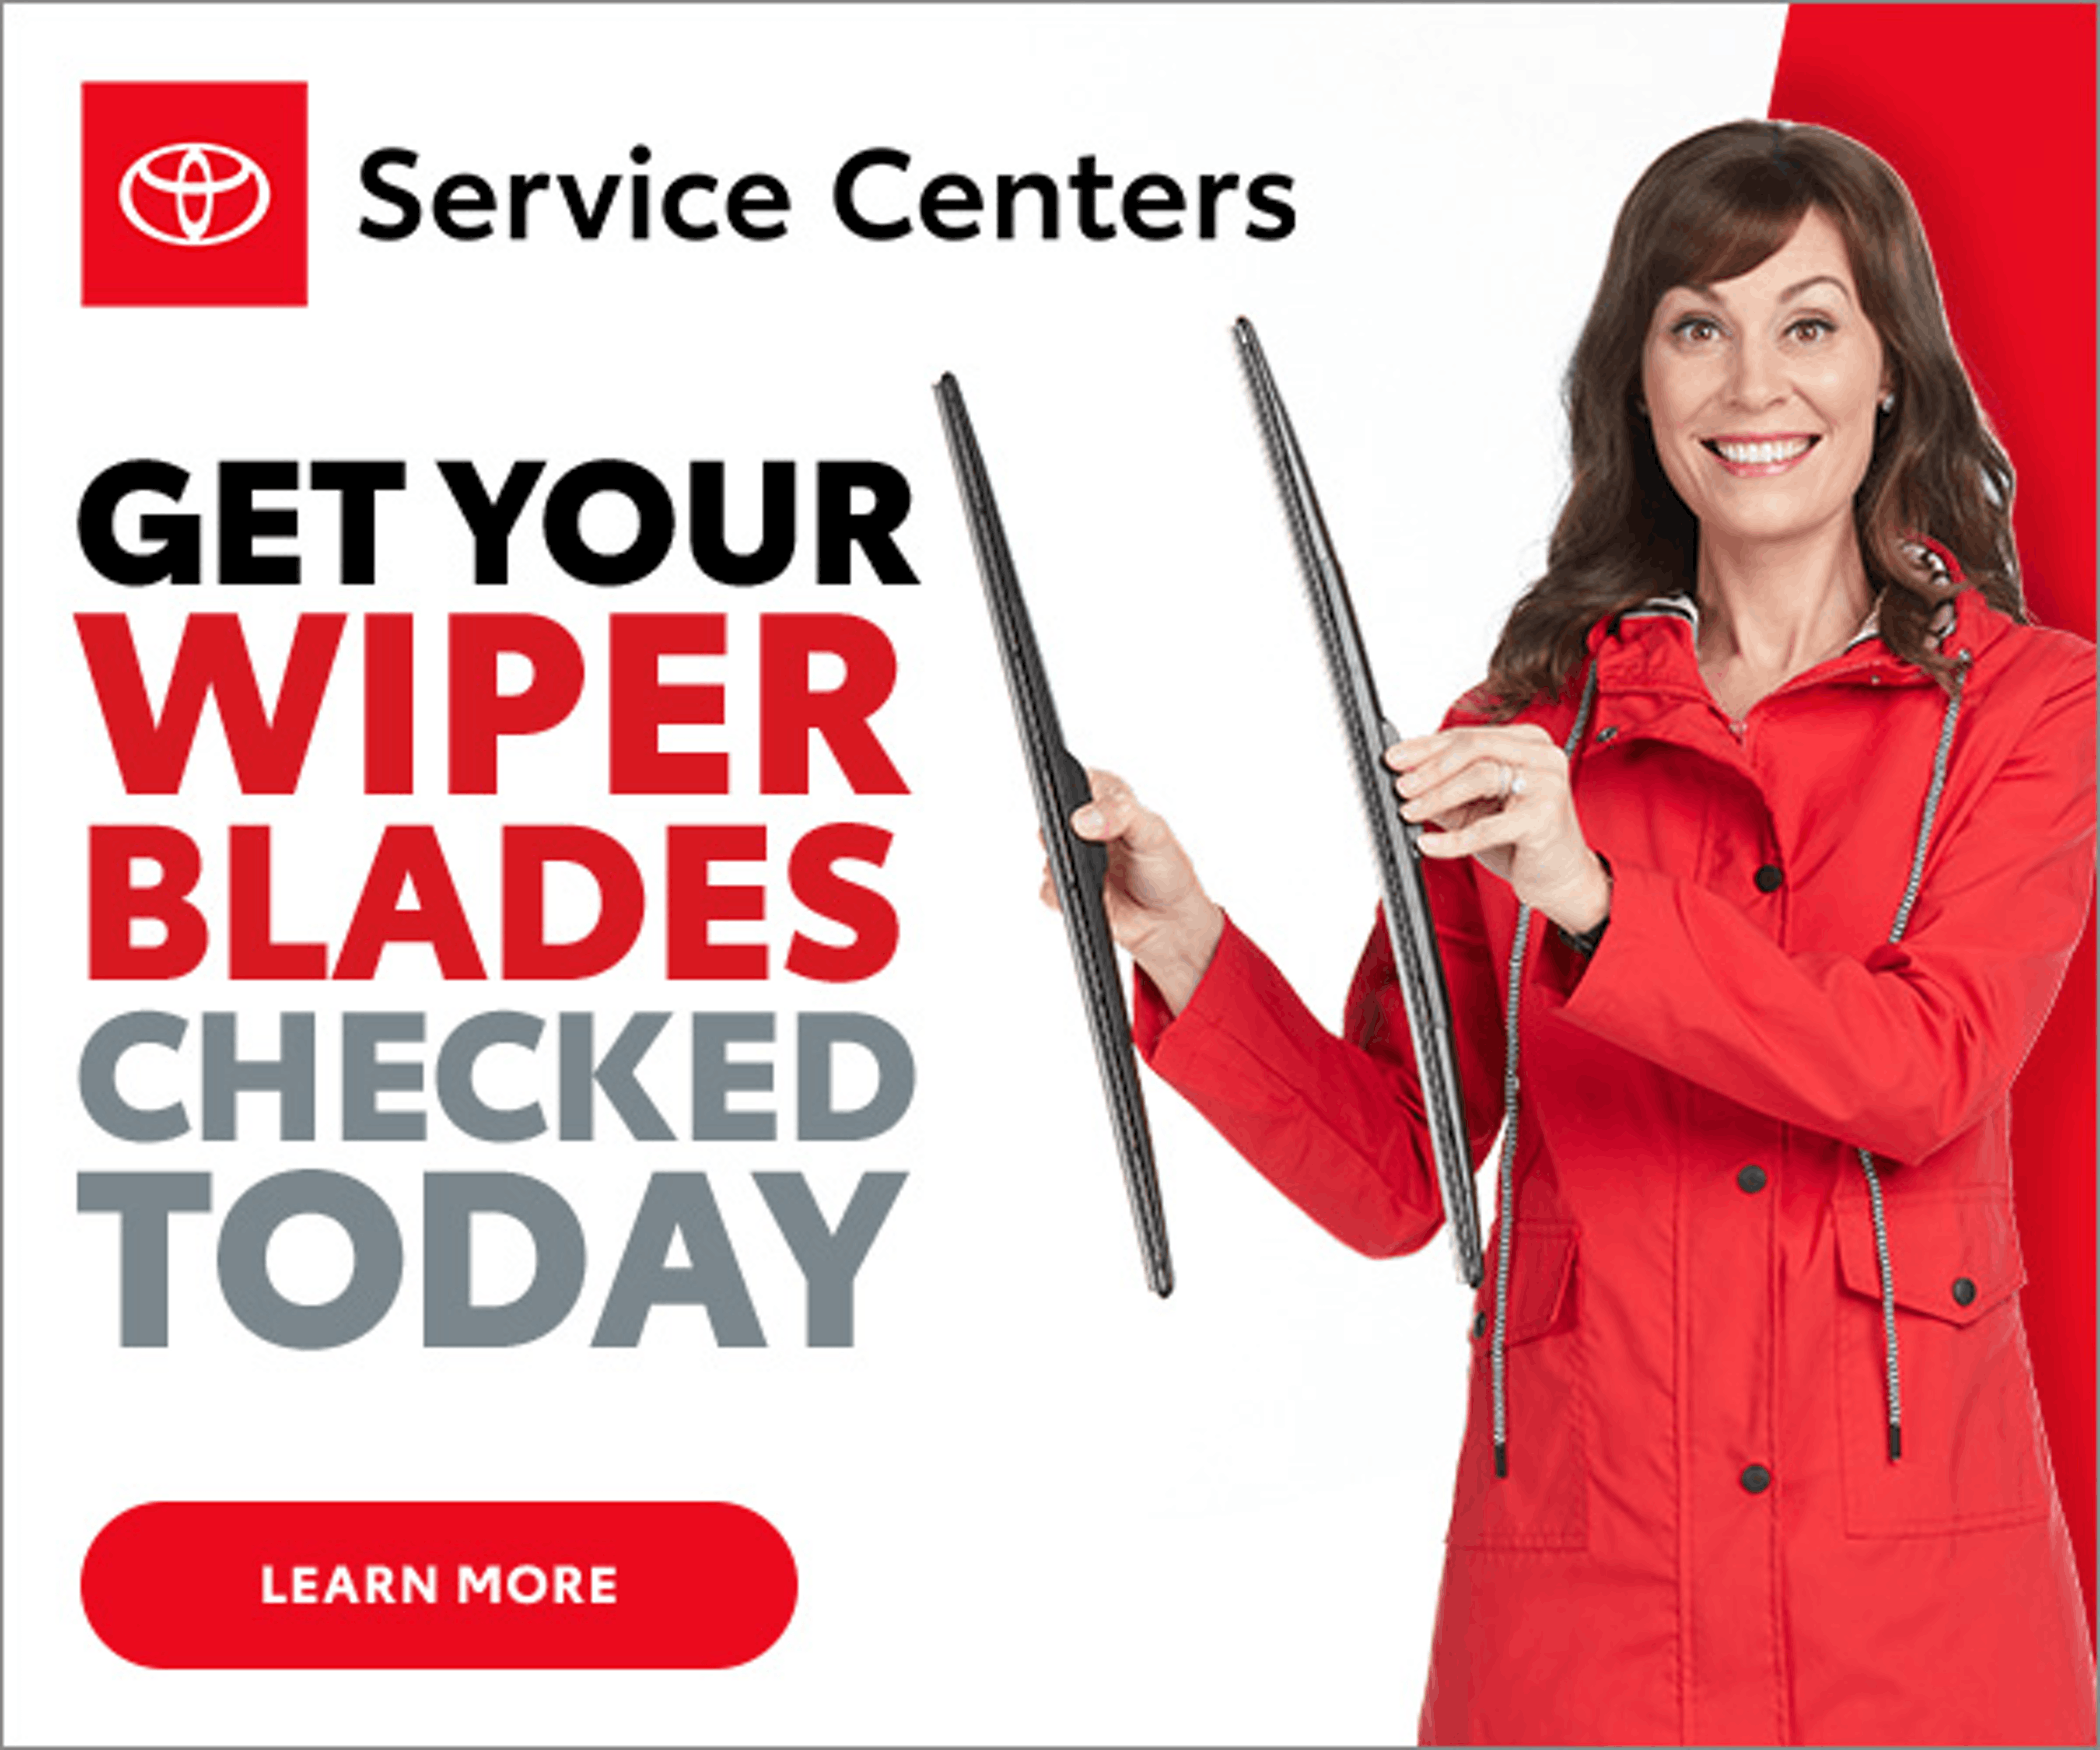 service special - get wiper blades checked